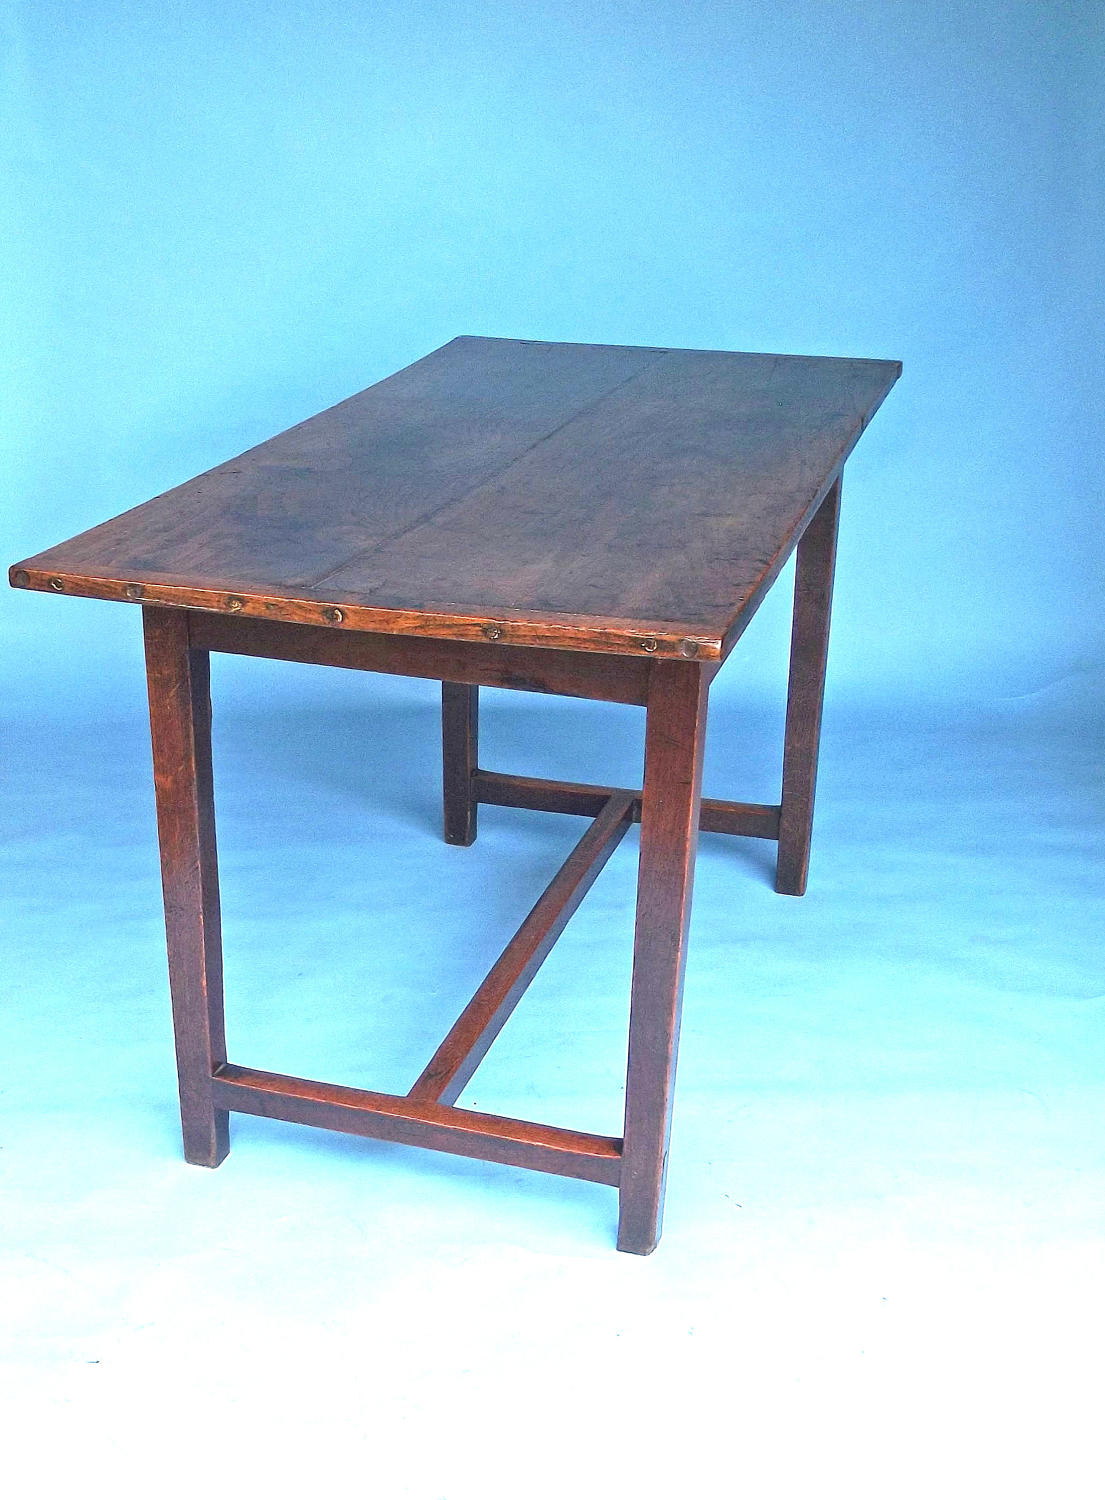 Antique Country Furniture 18thc Small Oak Farmhouse Table. English.